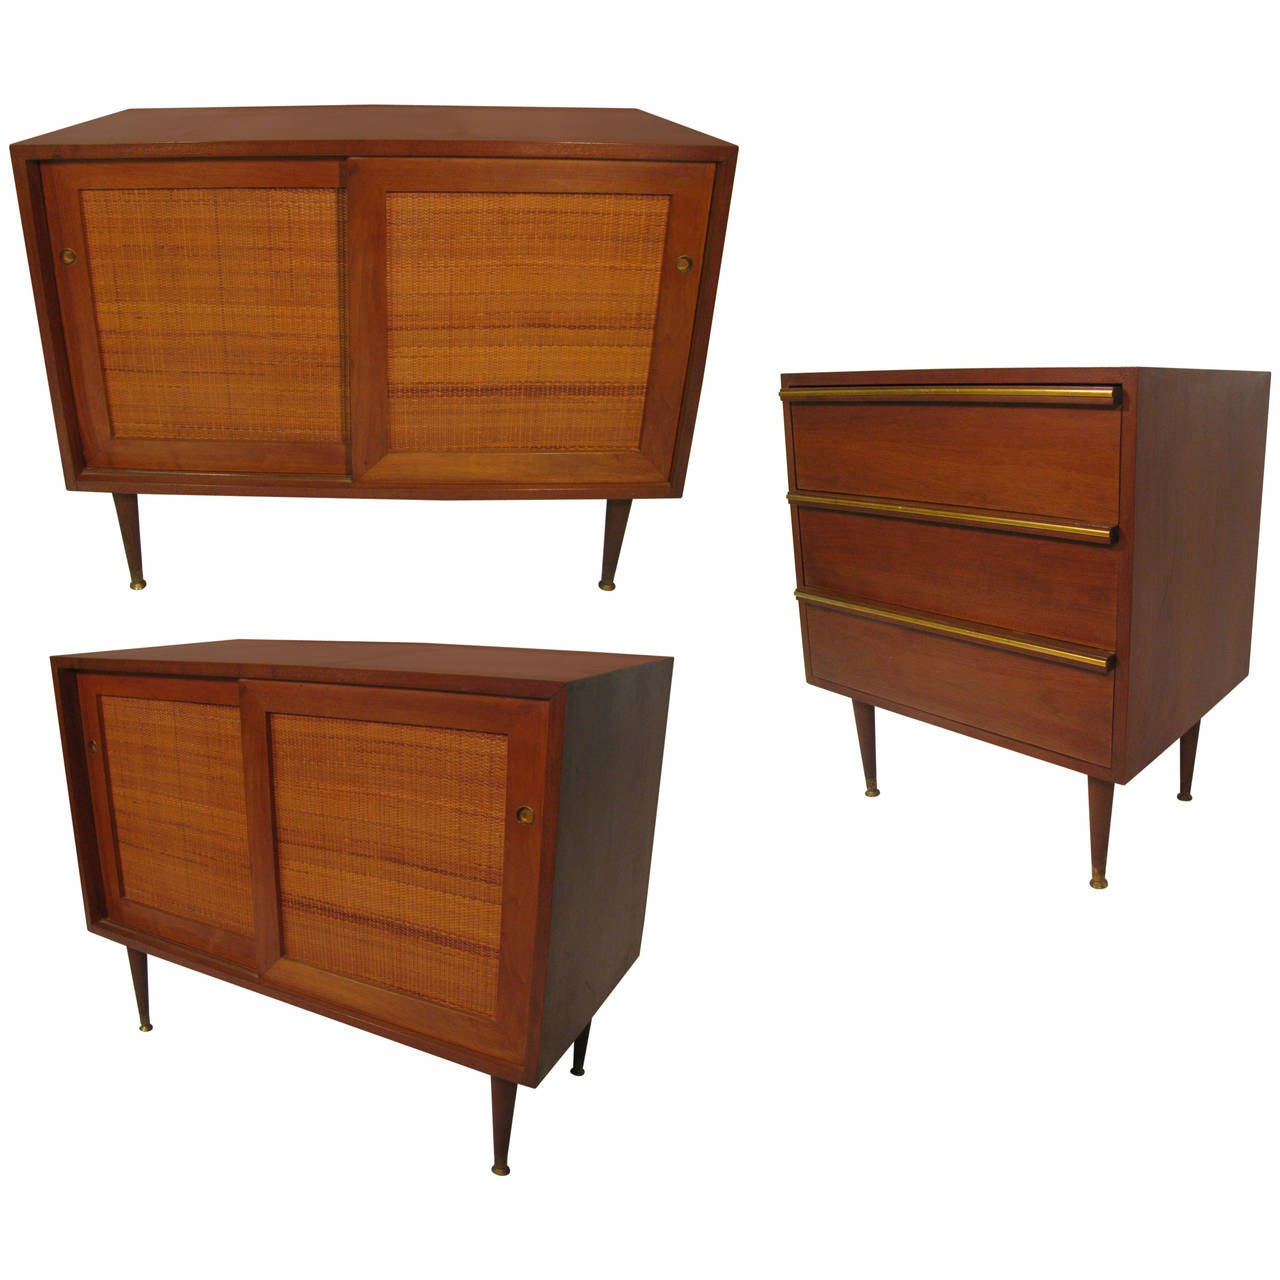 Mid Century Modern Split Level 1956 Edition Better Homes: Mid-Century Modern Three-Piece Cabinet System For Sale At